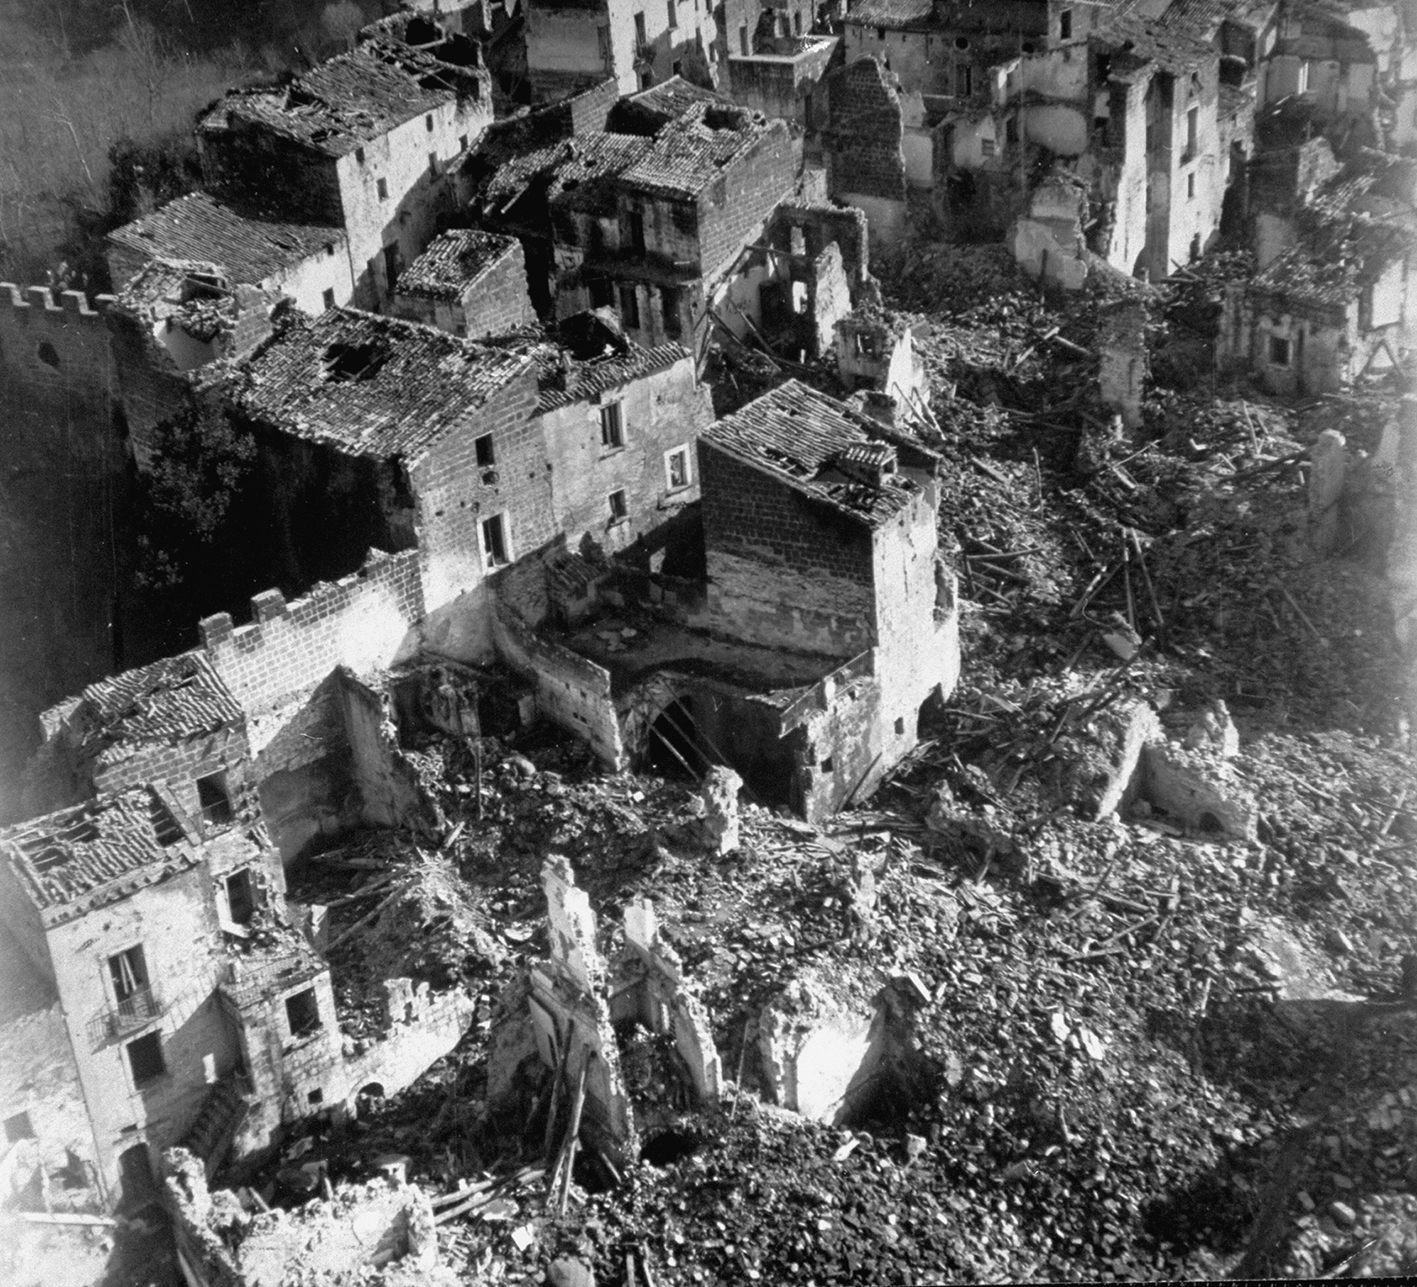 Aerial view of devastating ruins of this small town after it was shelled by Allies & then the Germans before it was captured on Dec. 12, 1943 by the Americans..  (Photo by Margaret Bourke-White/The LIFE Picture Collection/Getty Images)